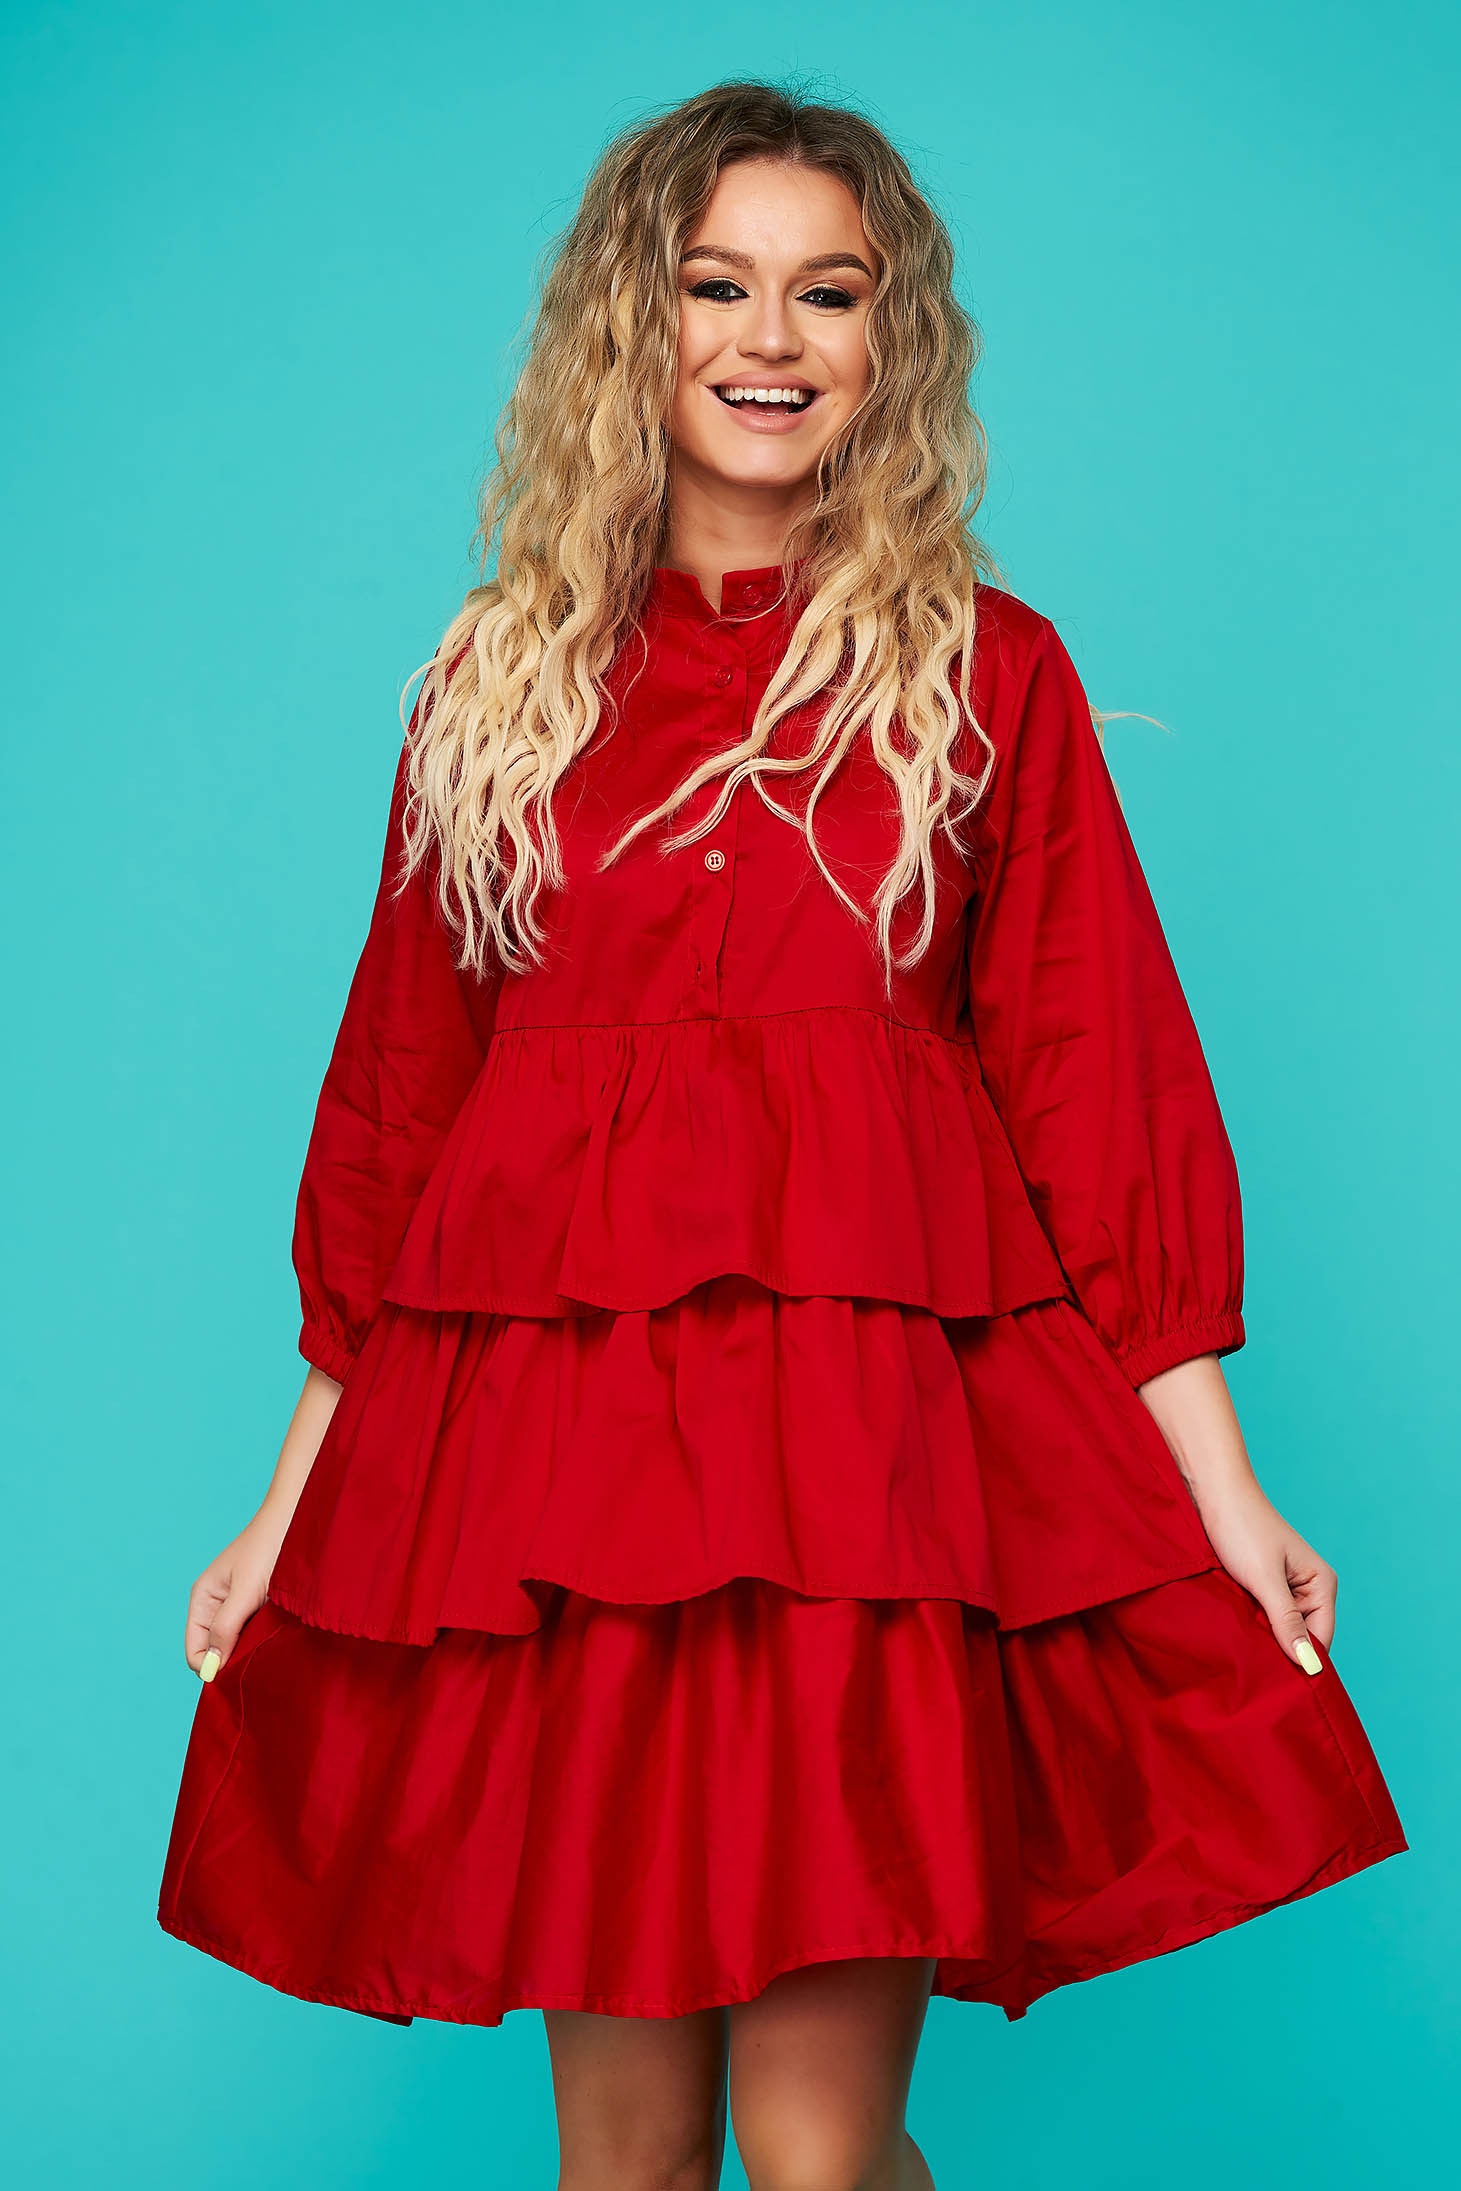 Red dress daily short cut flared nonelastic cotton with ruffle details